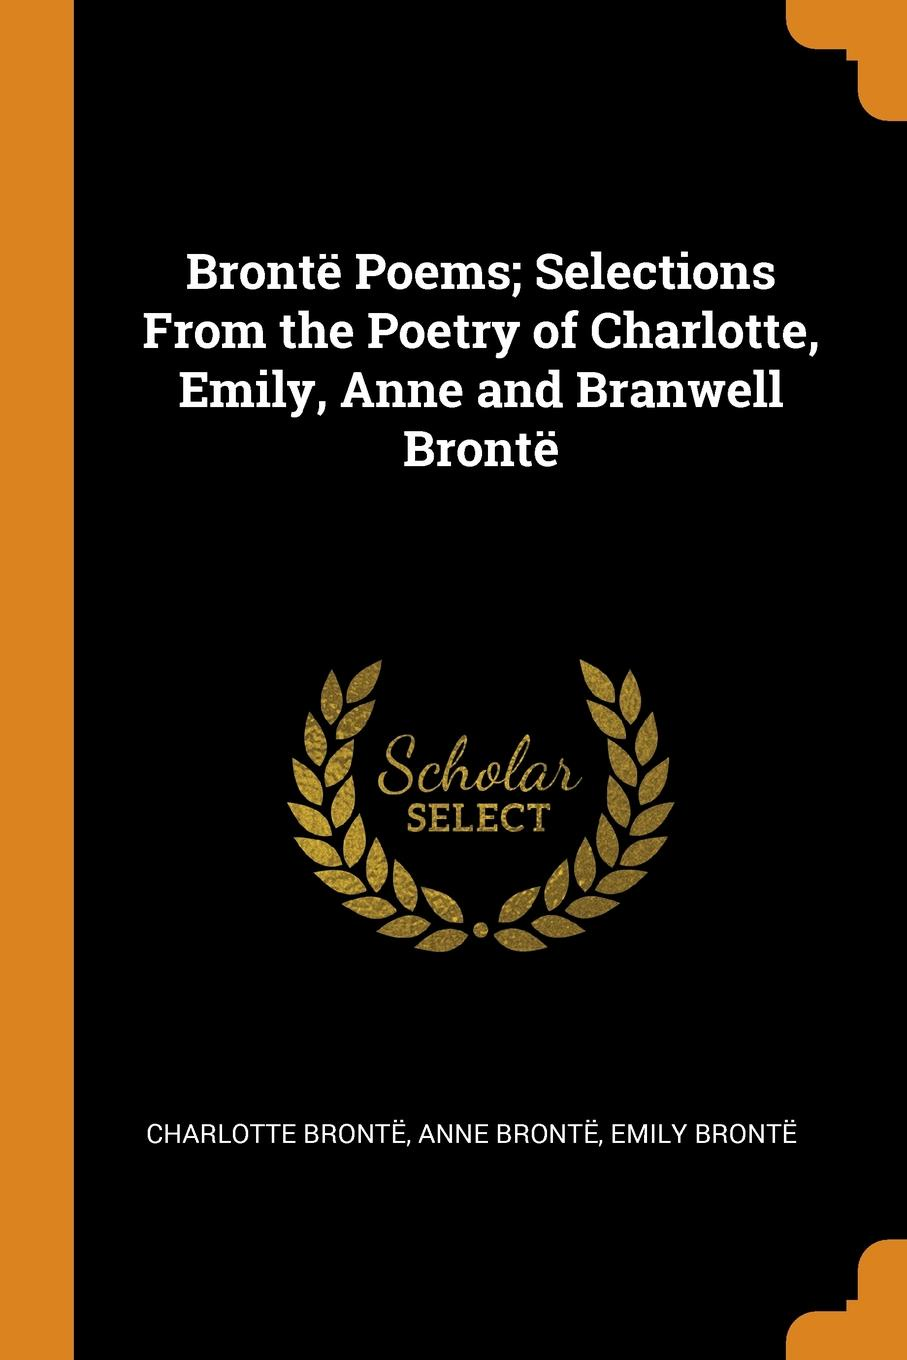 Charlotte Brontë, Anne Brontë, Emily Brontë Bronte Poems; Selections From the Poetry of Charlotte, Emily, Anne and Branwell Bronte